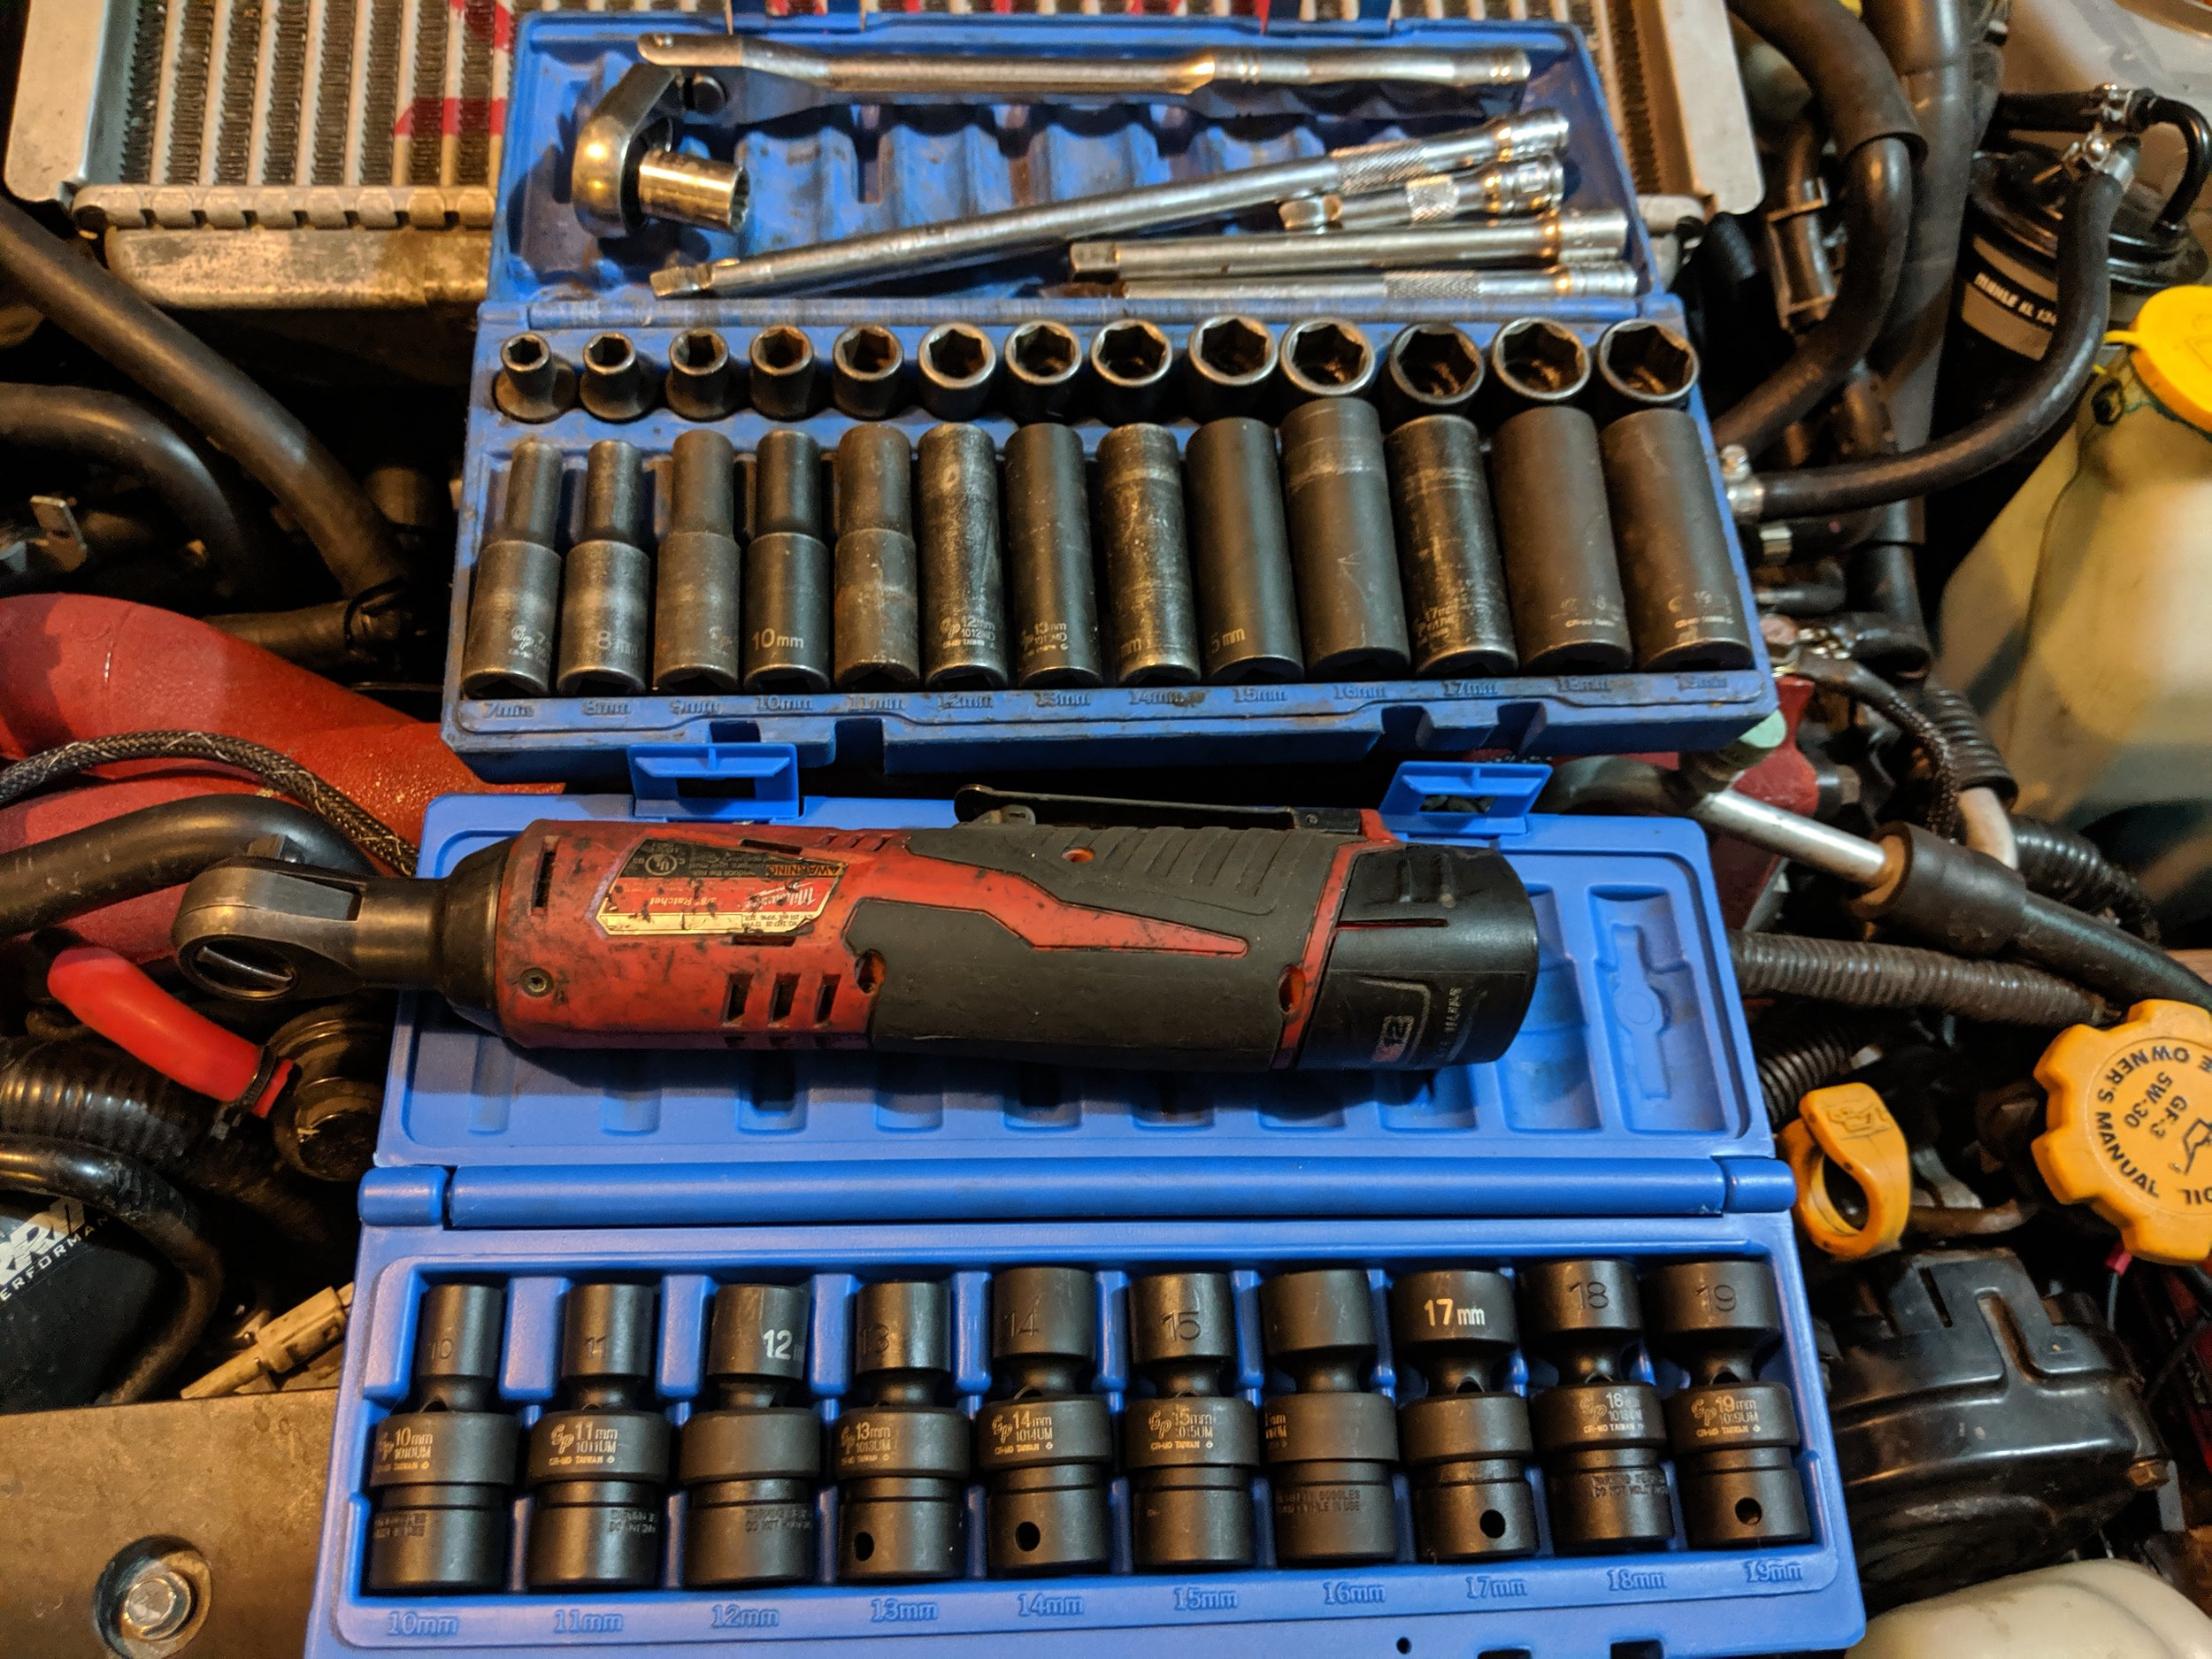 The best of buddies. My 3/8th socket sets from Grey Pneumatic and my Electric ratchet, they spend countless hours together.  Milwaukee 3/8th electric ratchet